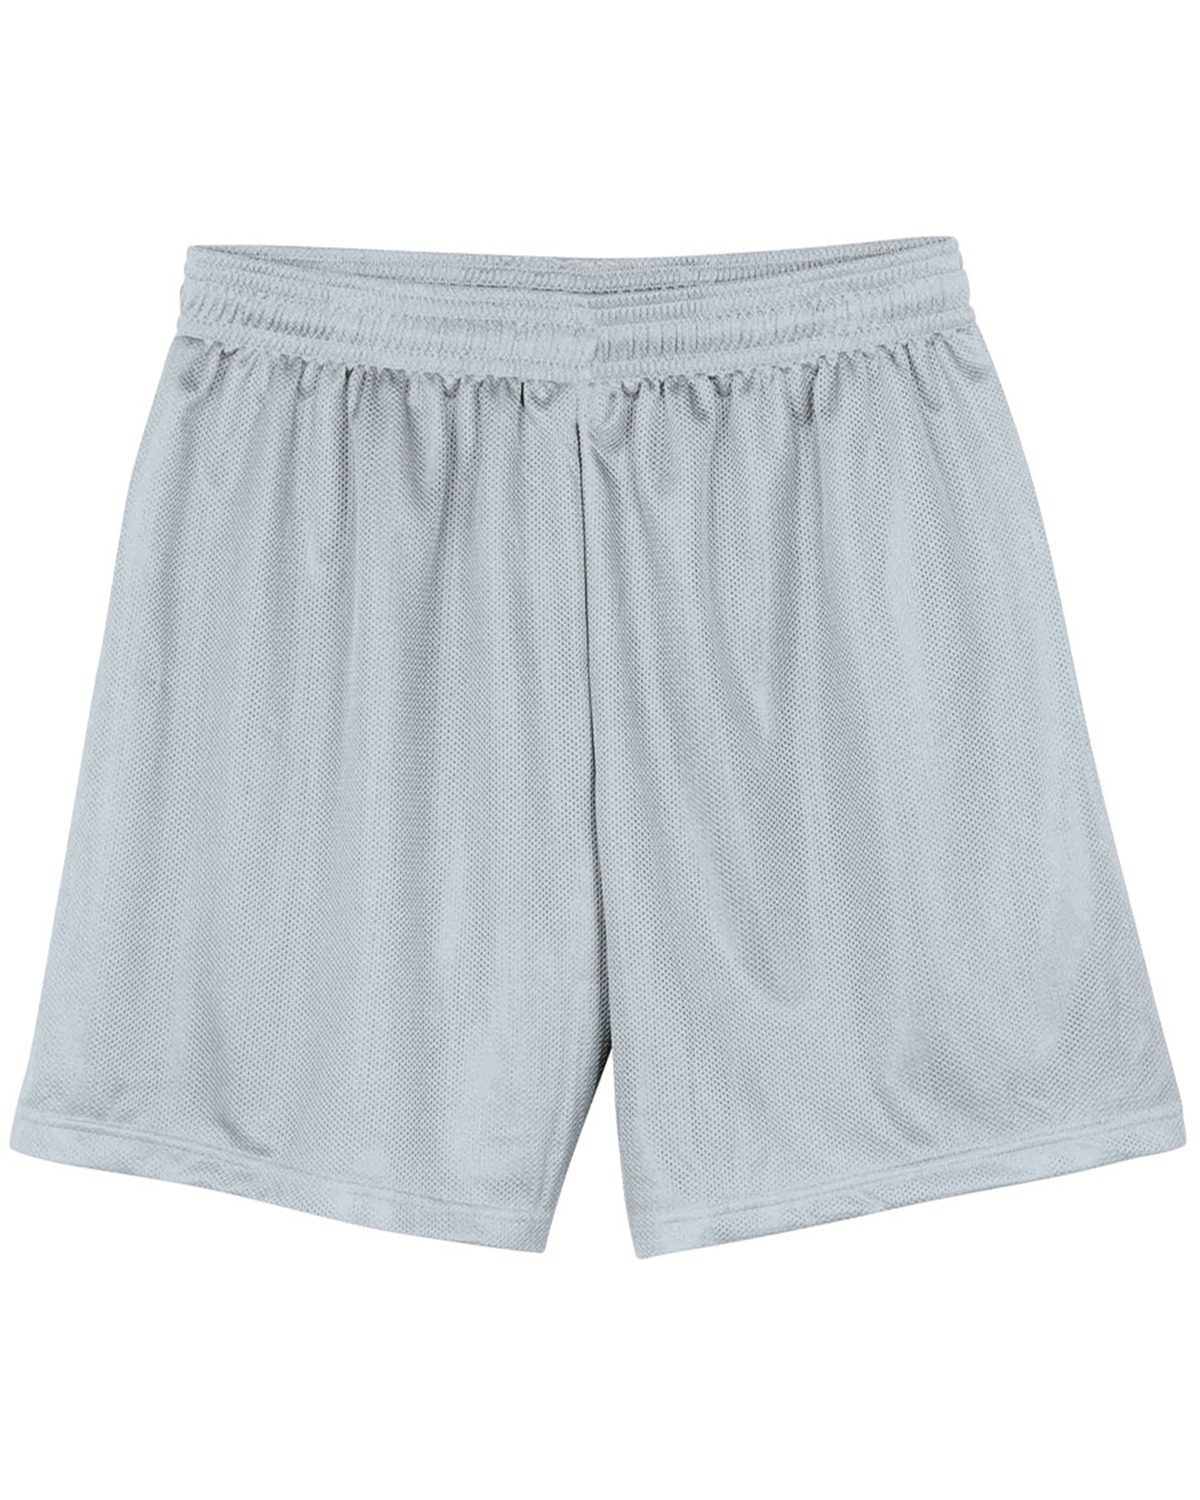 A4 Drop Ship - NB5184  Youth Six Inch Inseam Lined Micromesh Short